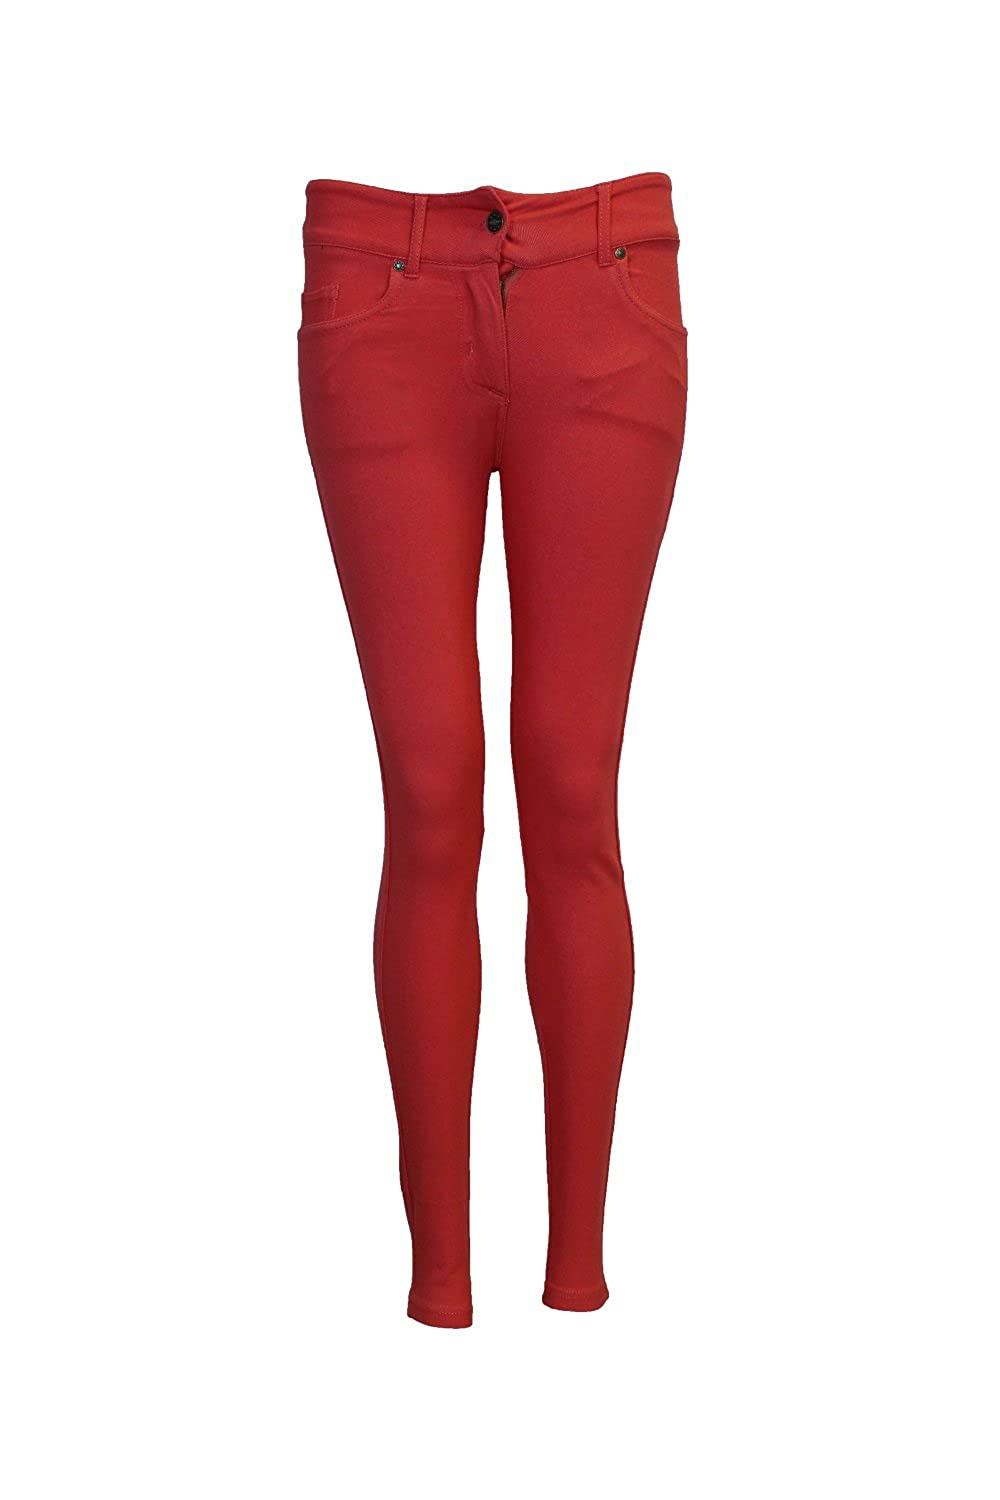 a998f74dd45 FASHION OASIS LADIES SKINNY COLOURED ZIP UP JEGGINGS STRETCH TROUSER JEANS  LEGGINGS SIZES 8 10 12 14 16 18 20